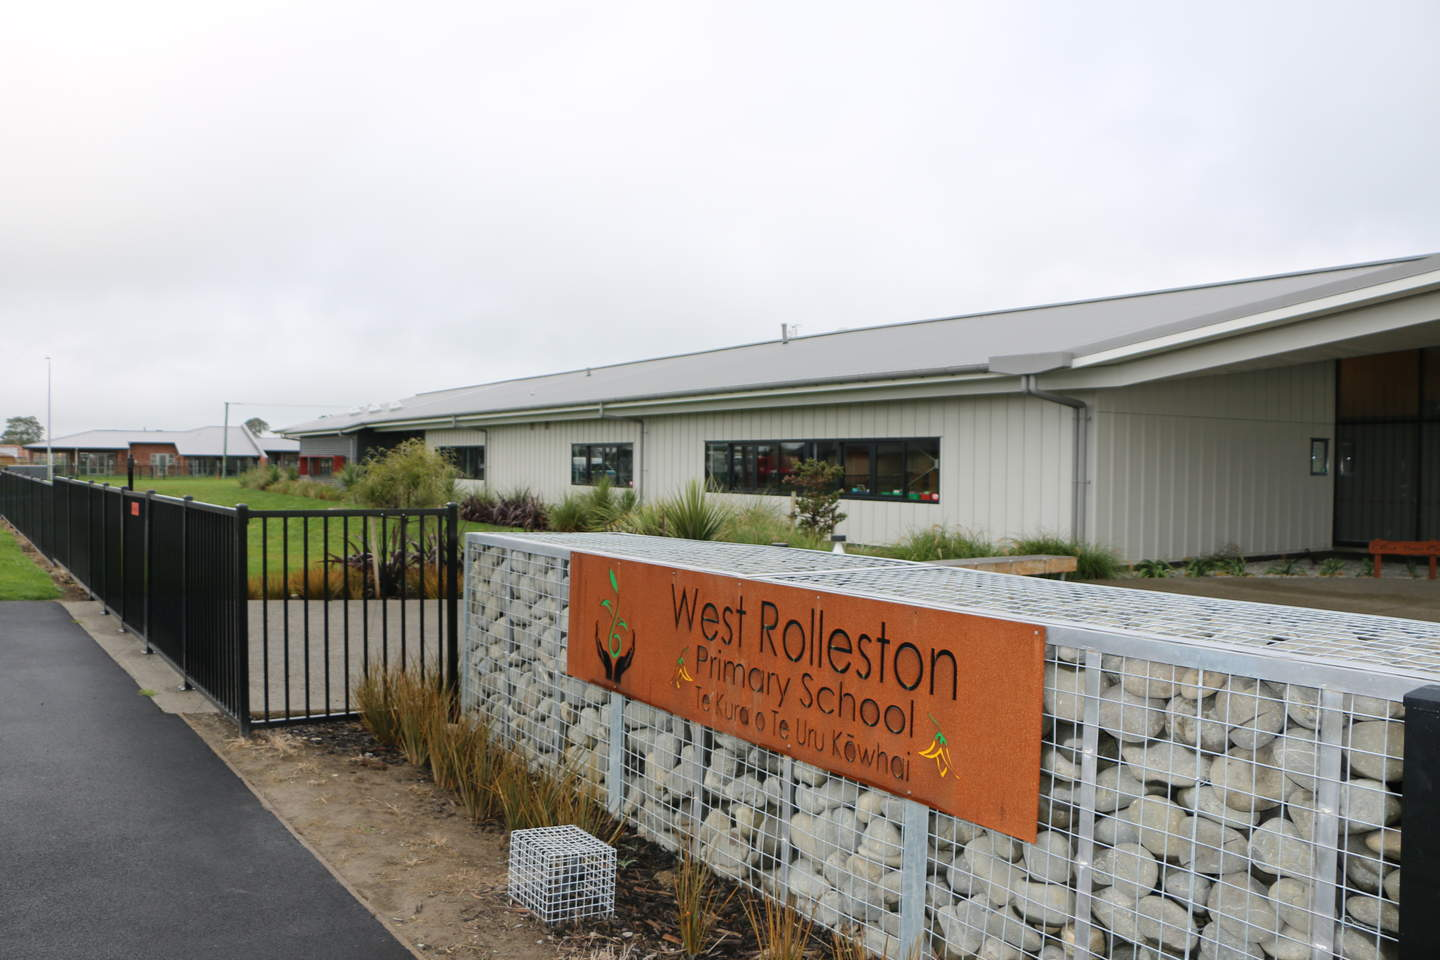 West Rolleston Primary School opened at the beginning of 2016 - one of four primary schools catering to the growing population